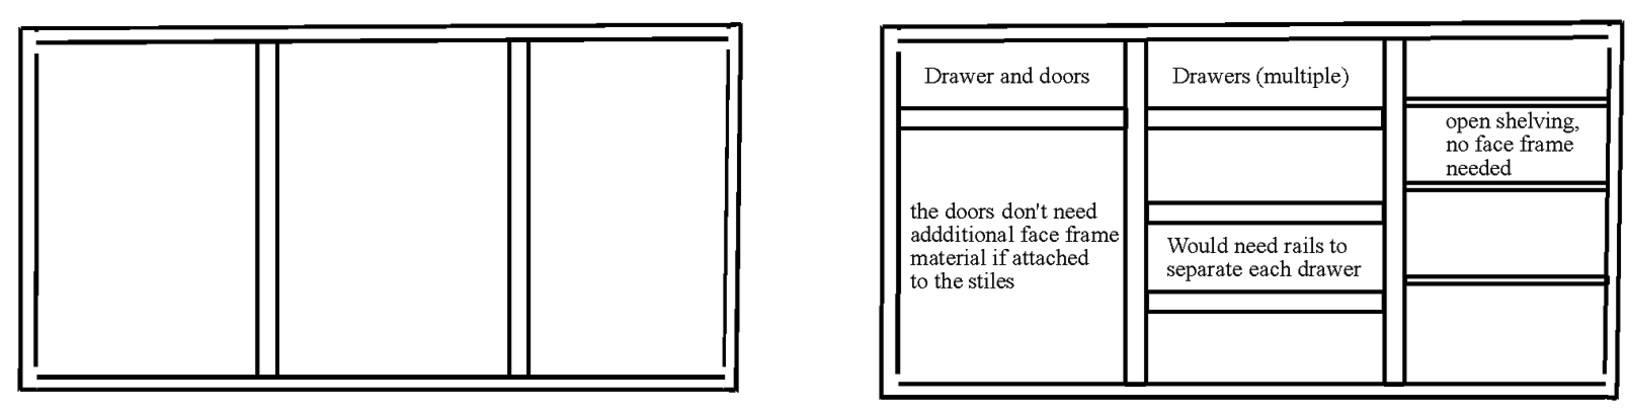 cabinet, division, drawing